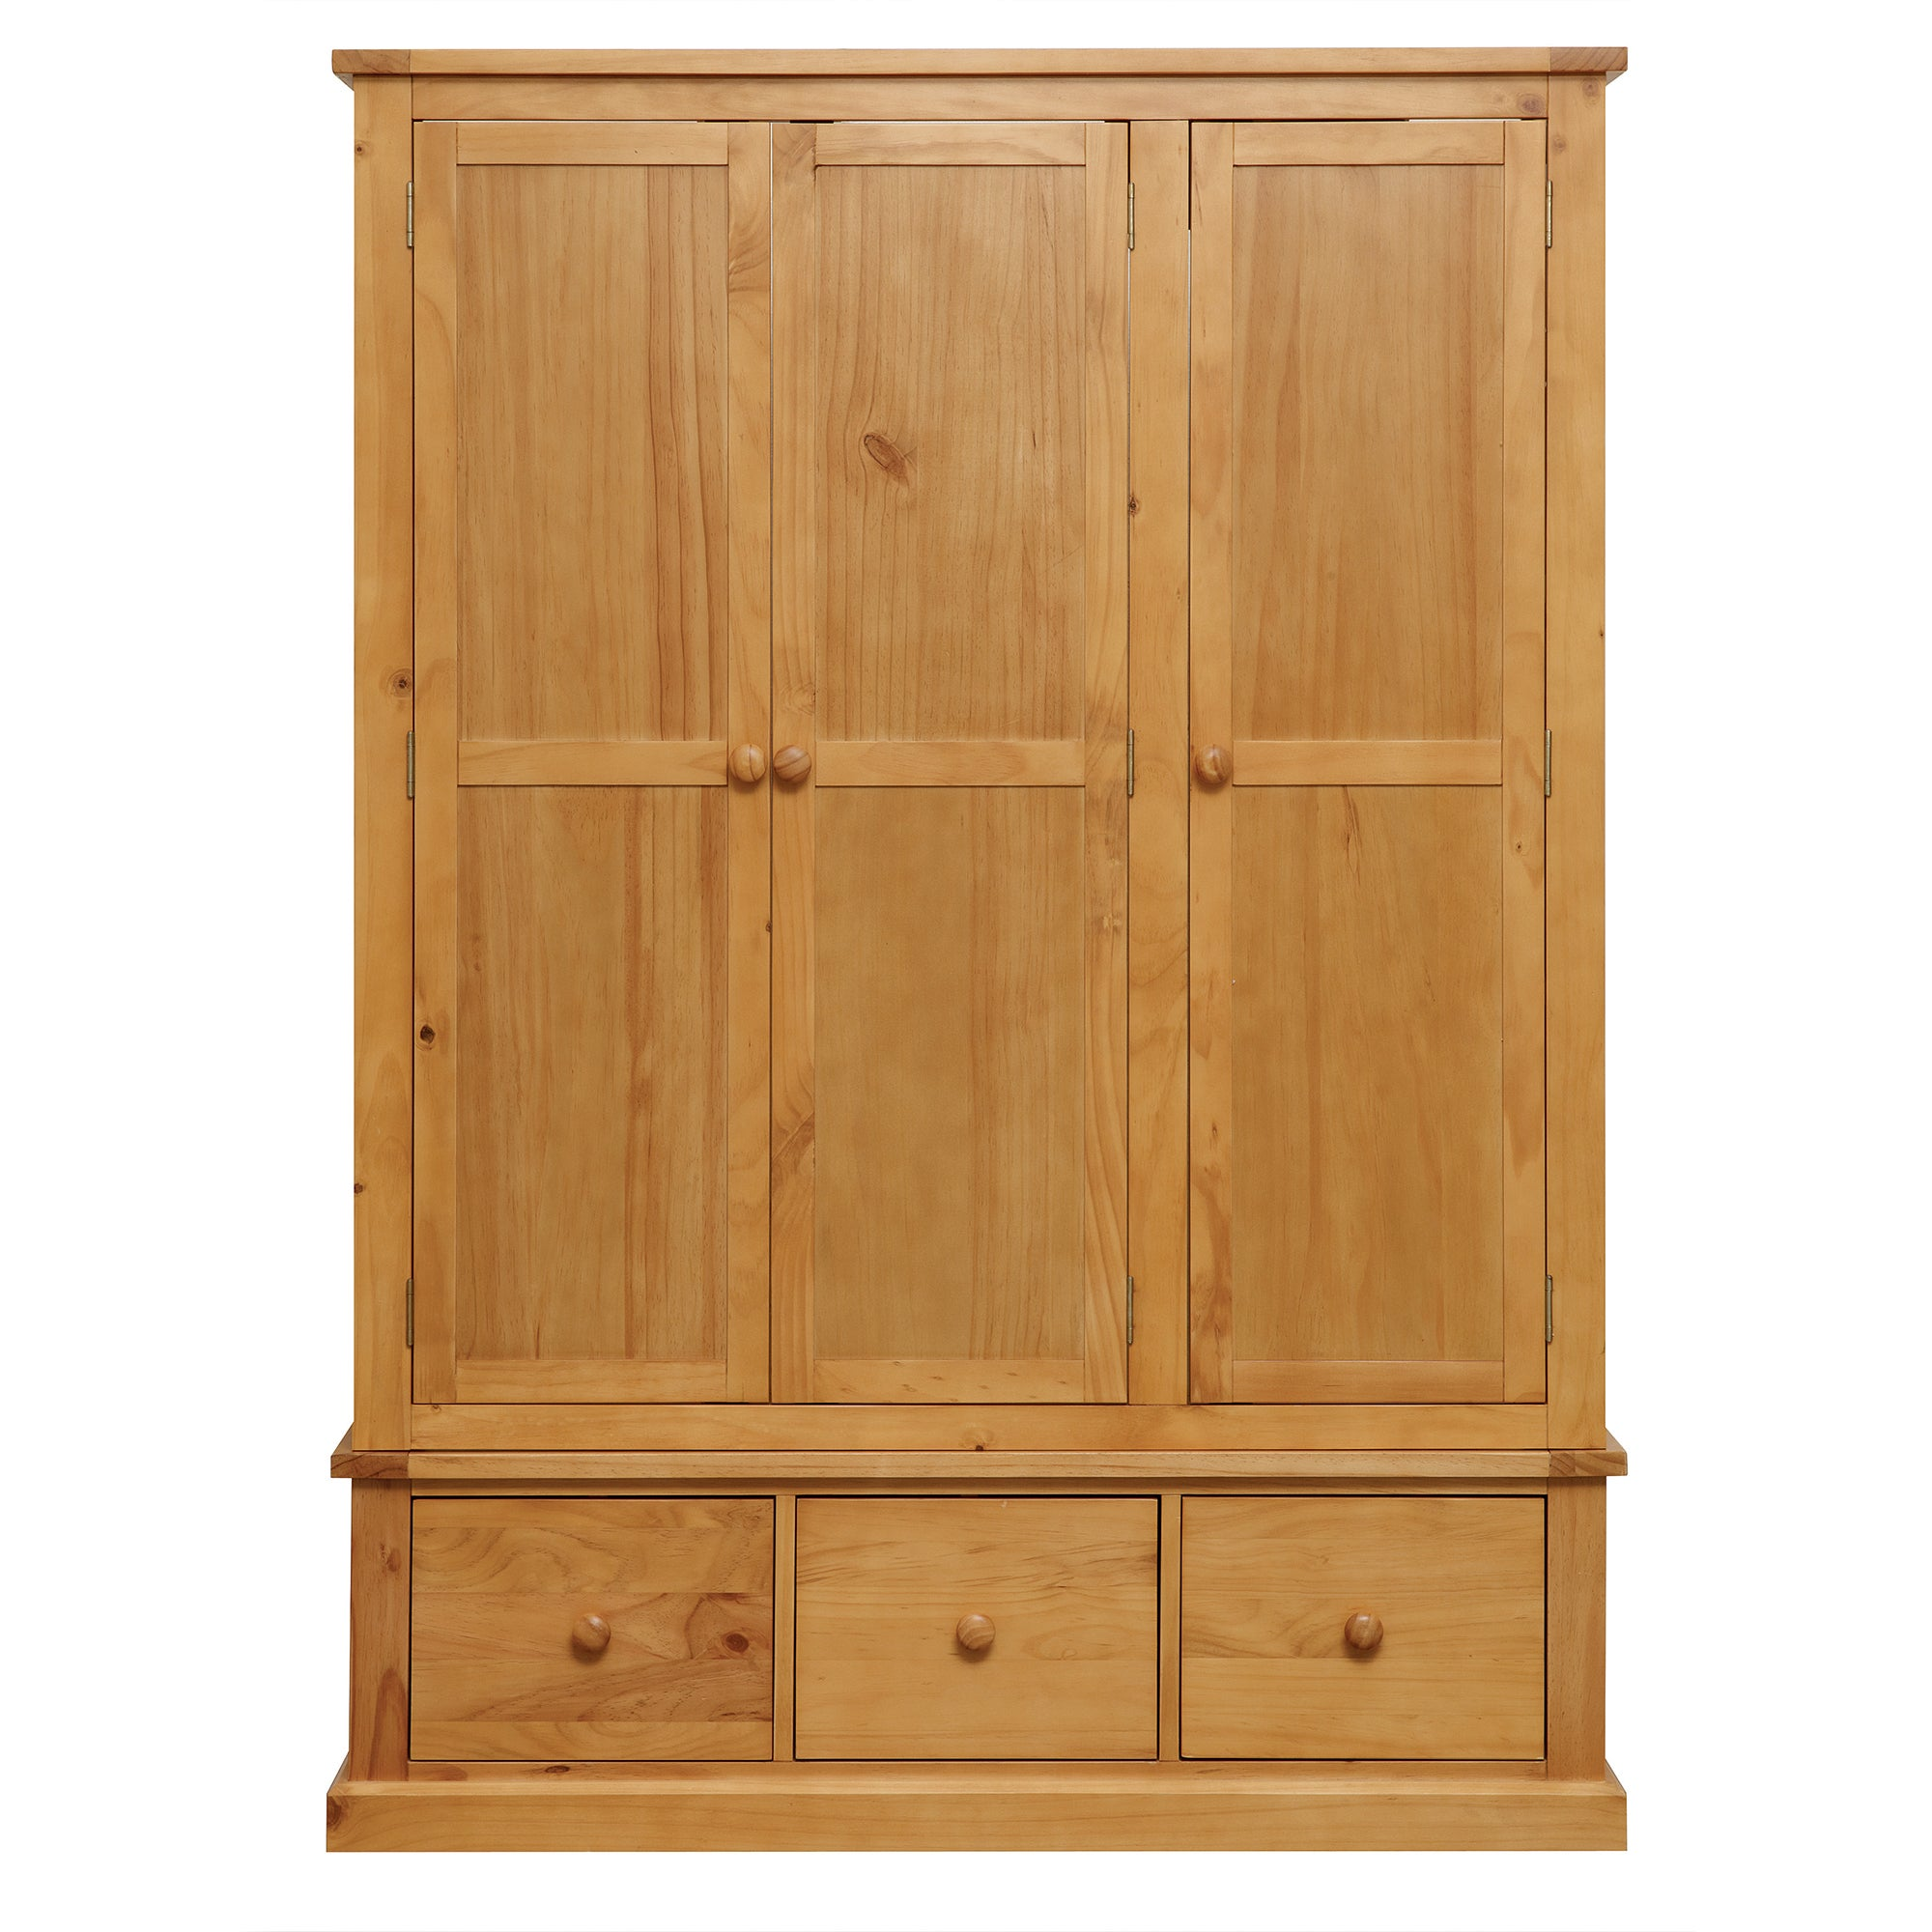 Newhaven Pine Bedroom Furniture Collection